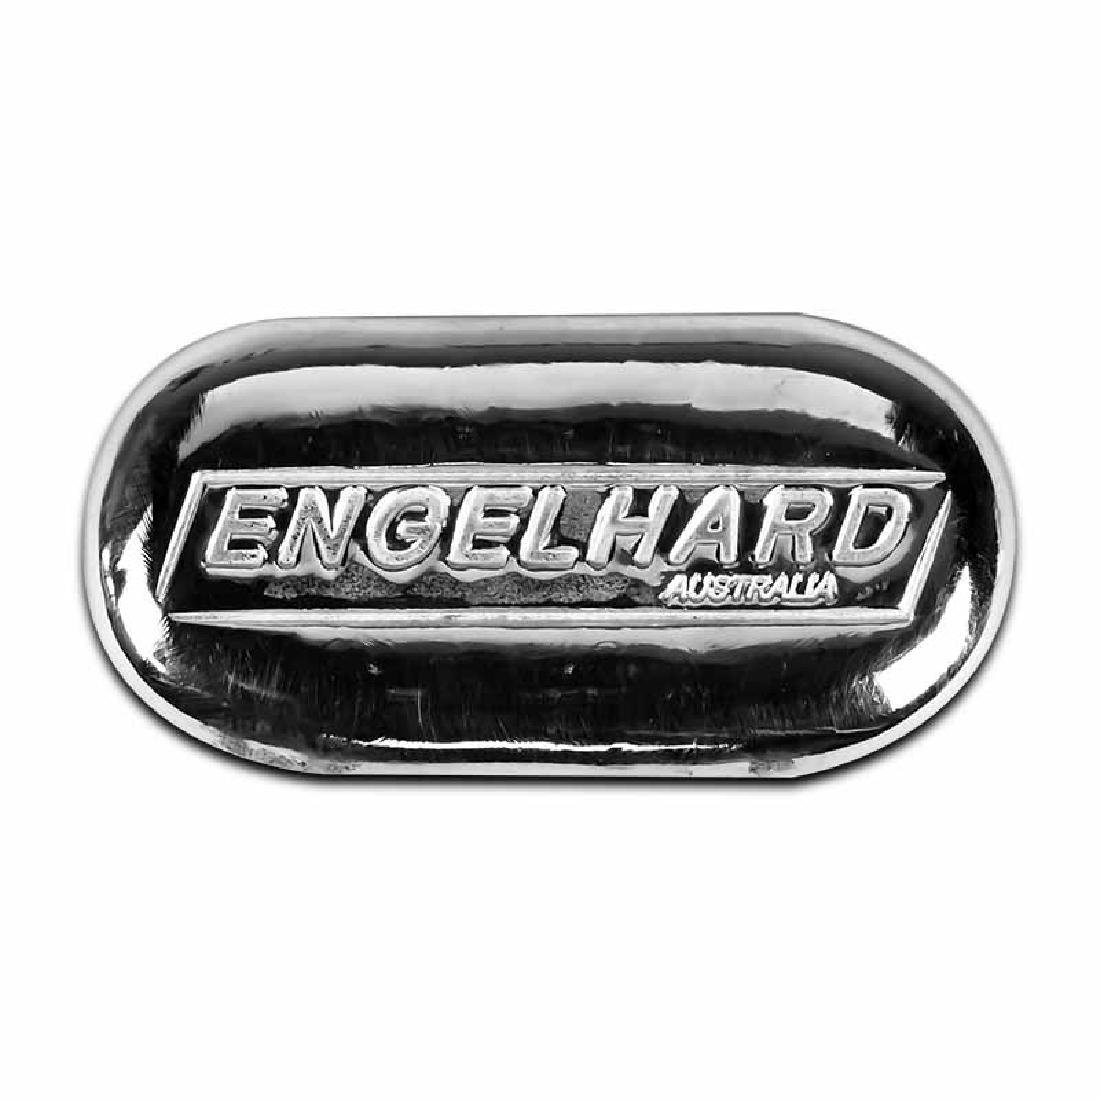 Engelhard Silver Bar 2 oz Bar - New Cast